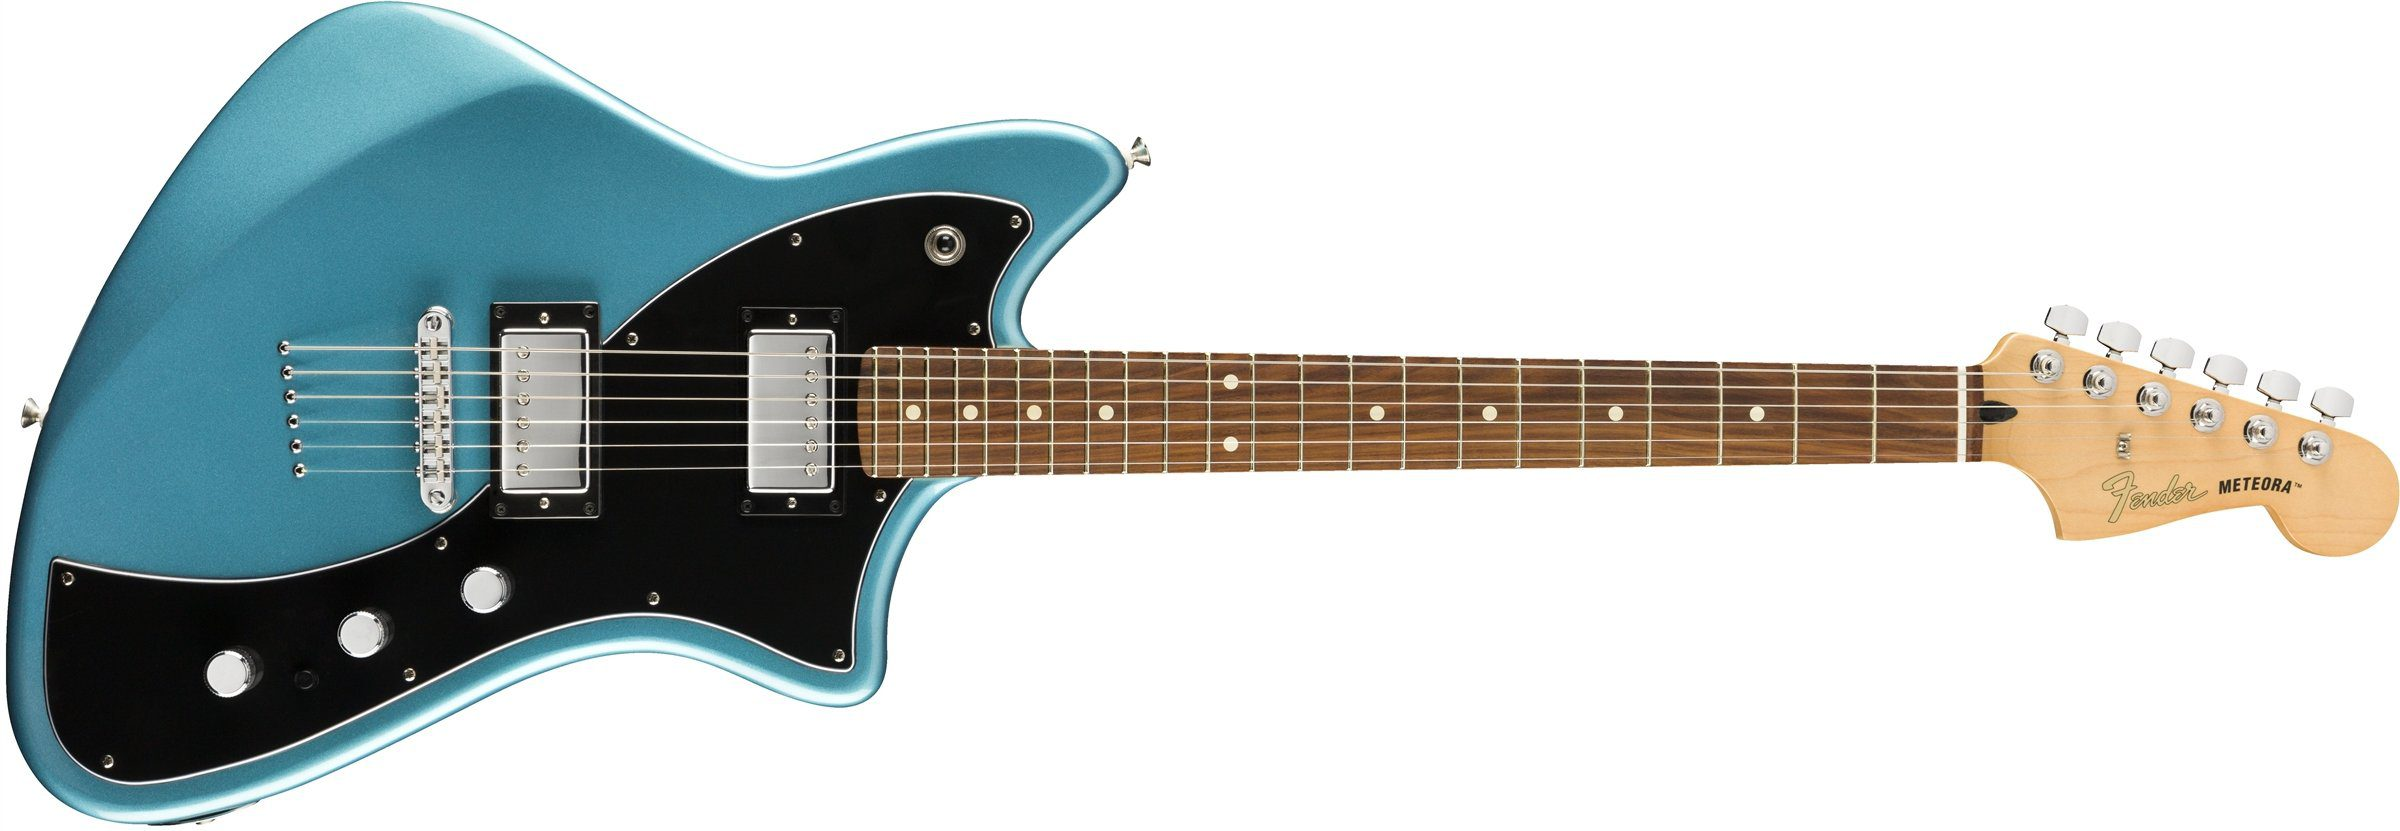 Fender-Alternate-Reality-Meteora-HH-in-Lake-Placid-Blue